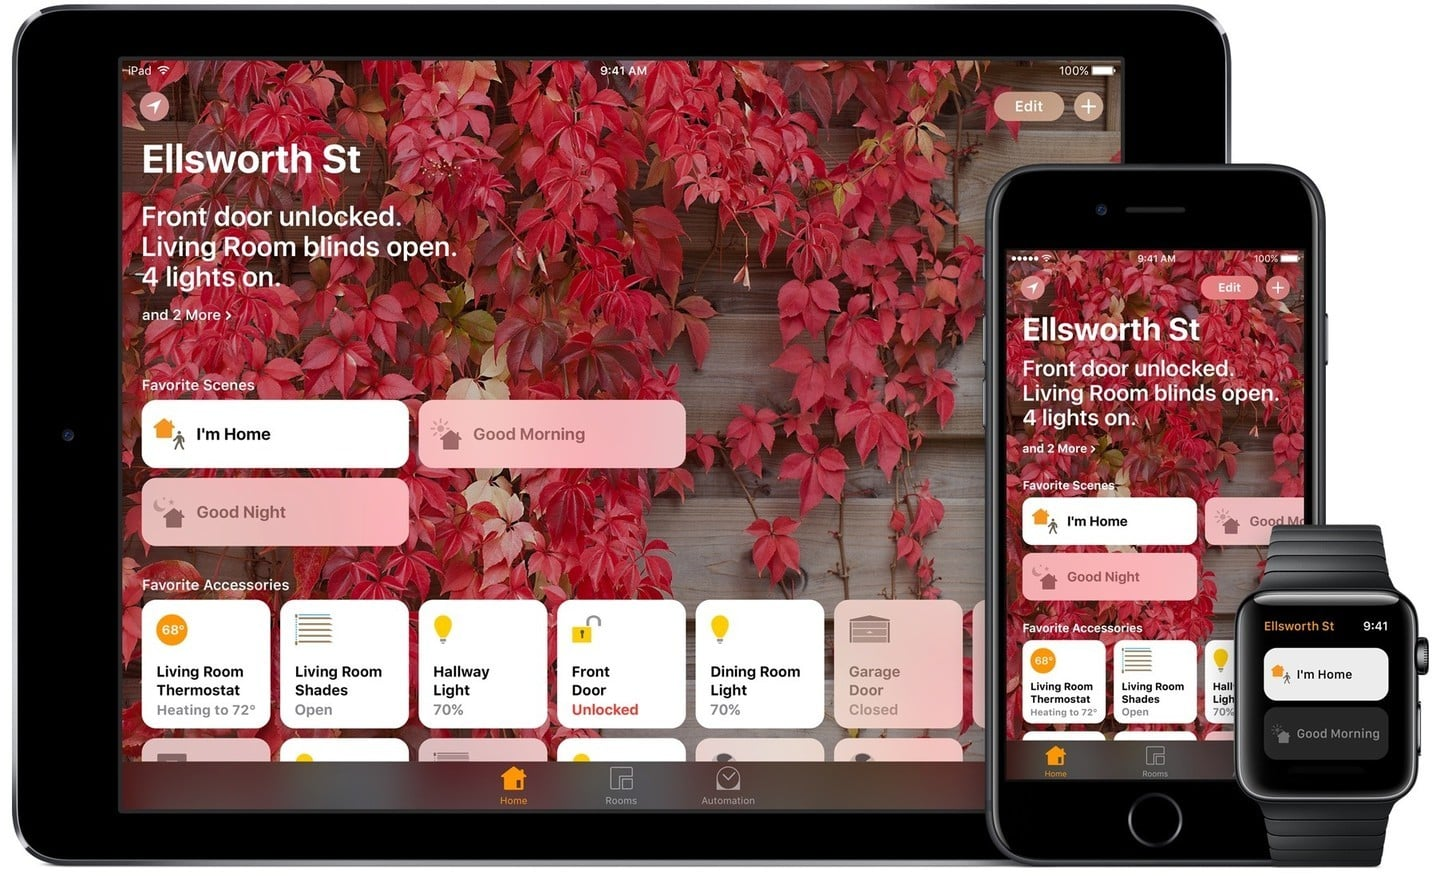 Apple Fixes iOS 11.2 HomeKit Flaw; Allowed Unauthorized Remote Access to Homes